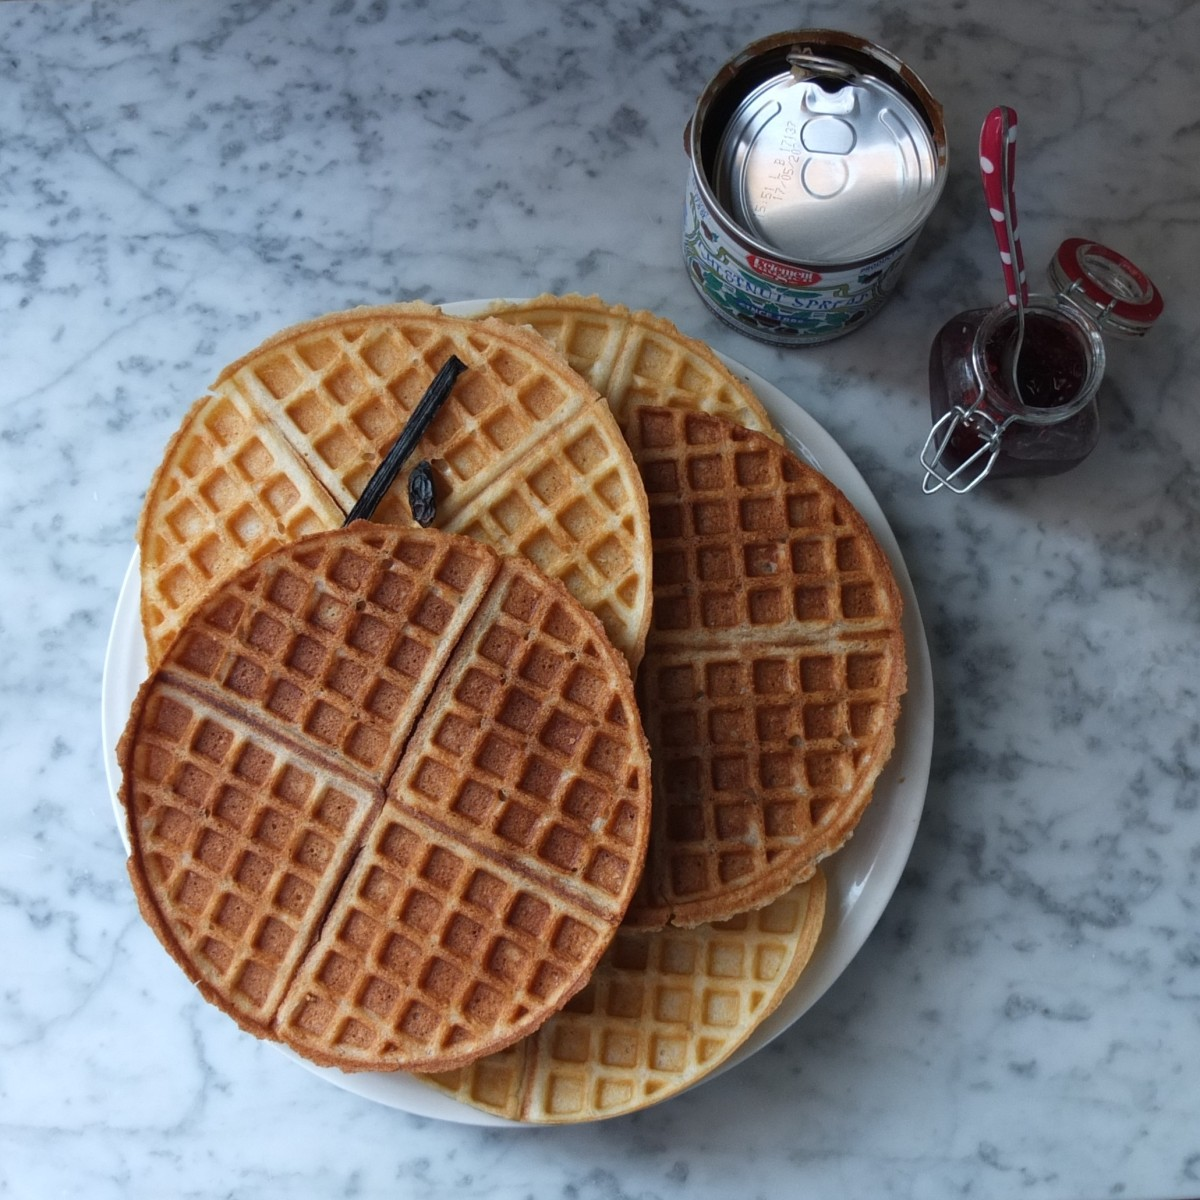 'Gourmet' beurre noisette waffles recipe!  Chestnut, tonka or vanilla!  Glutenfree or not... :)